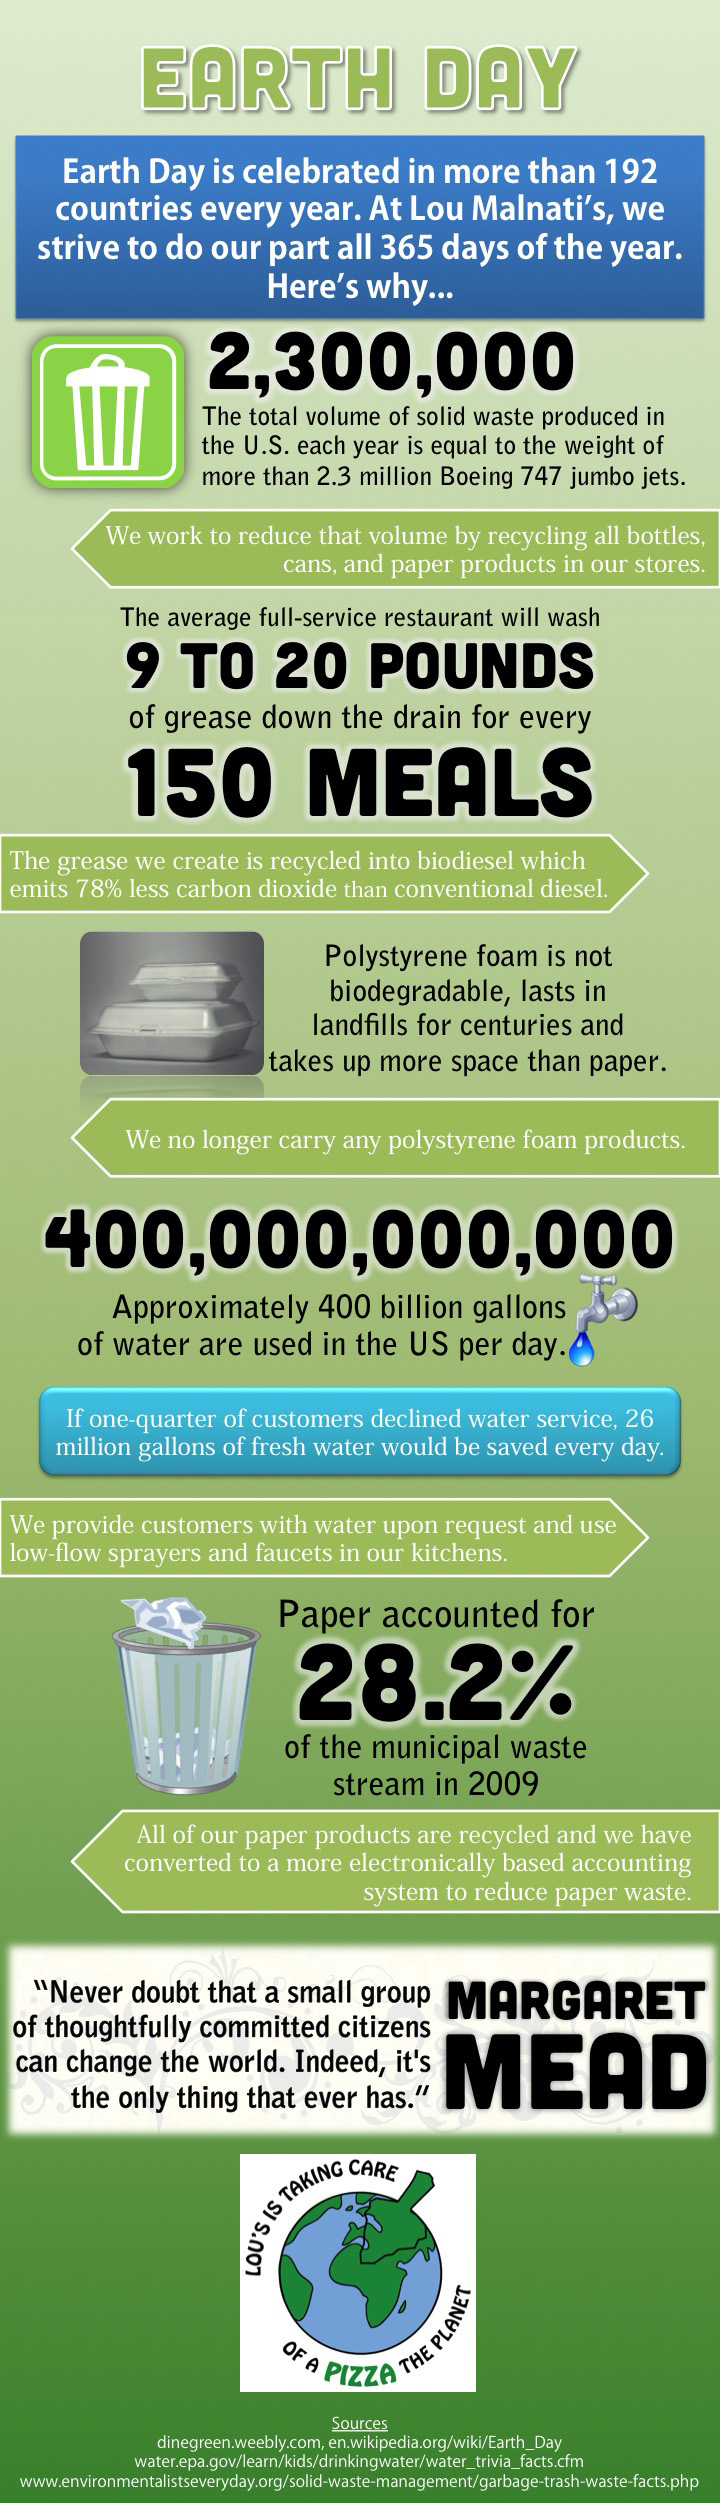 Earth Day Infographic | Lou Malnati's